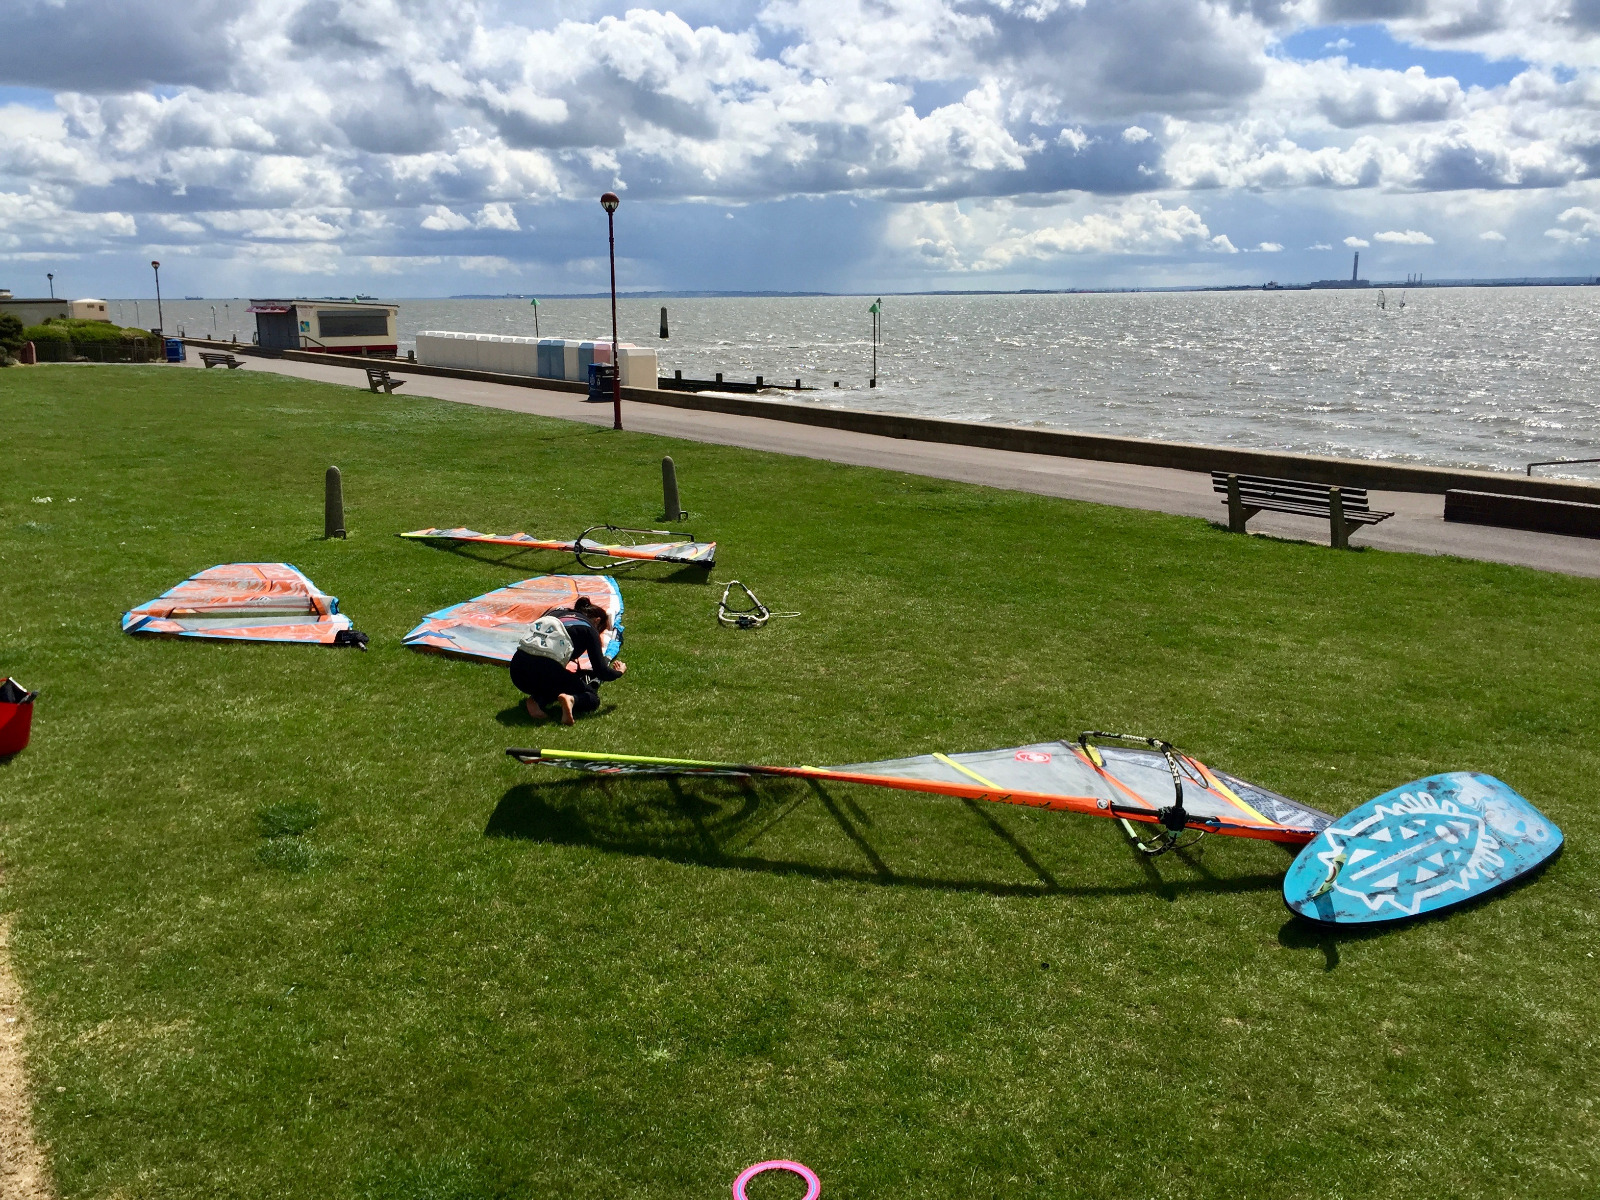 windsurf beaches, chalkwell beach, windsurfing essex, rigging green chalkwell